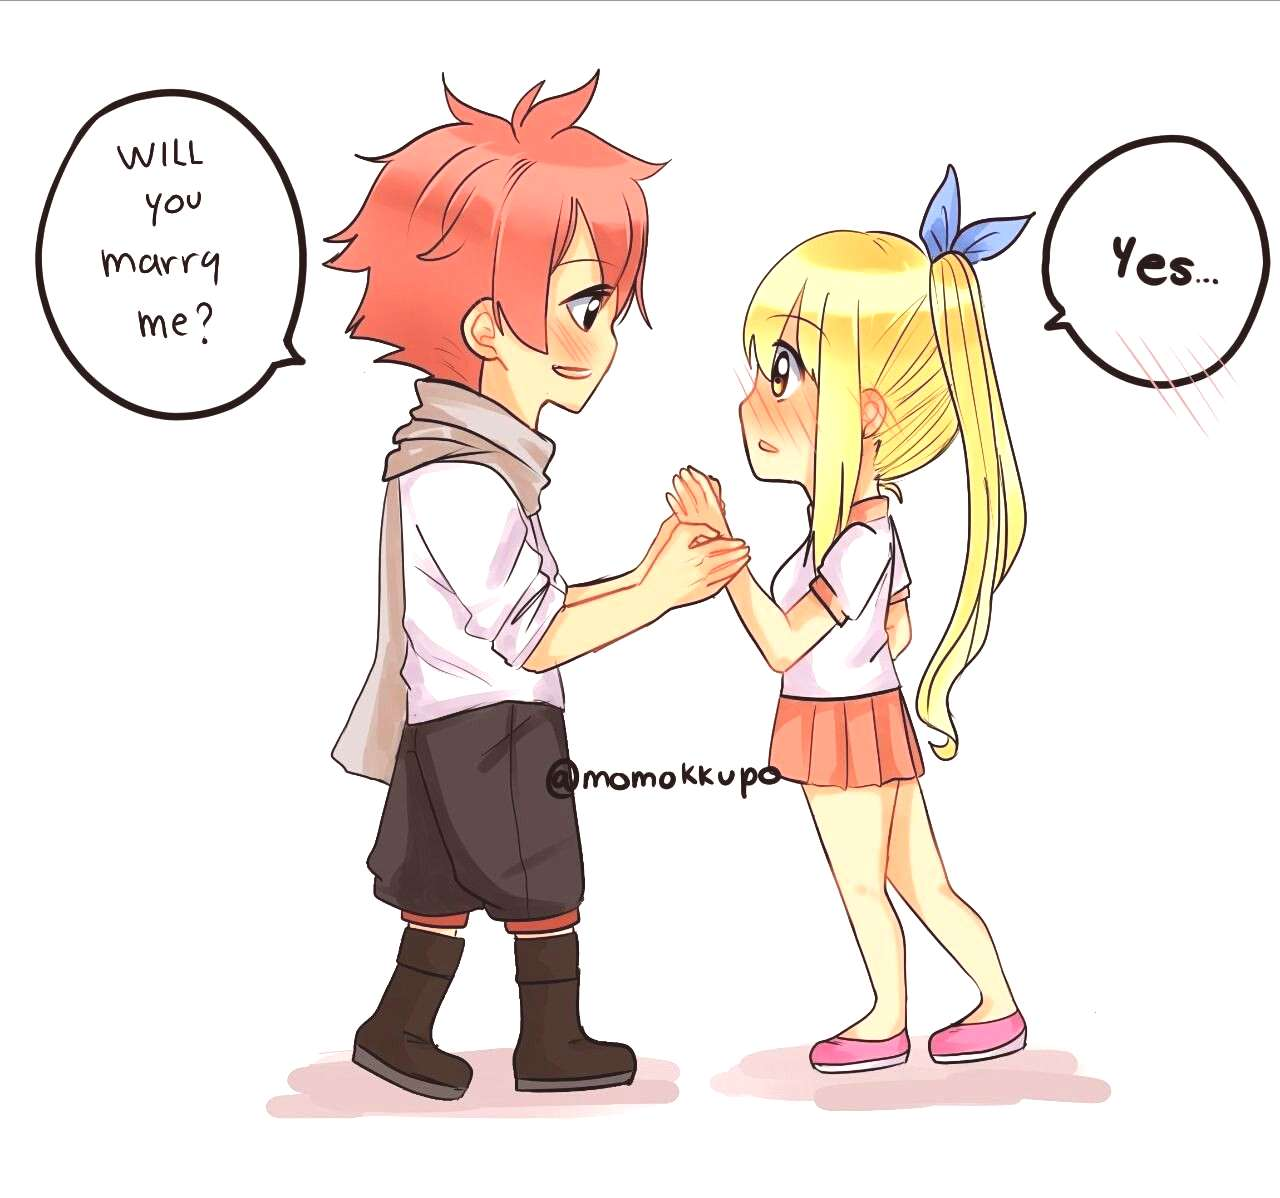 Nalu fluff week Confession -Momokkupo Nalu fluff week Confession - Calm Before The Storm user